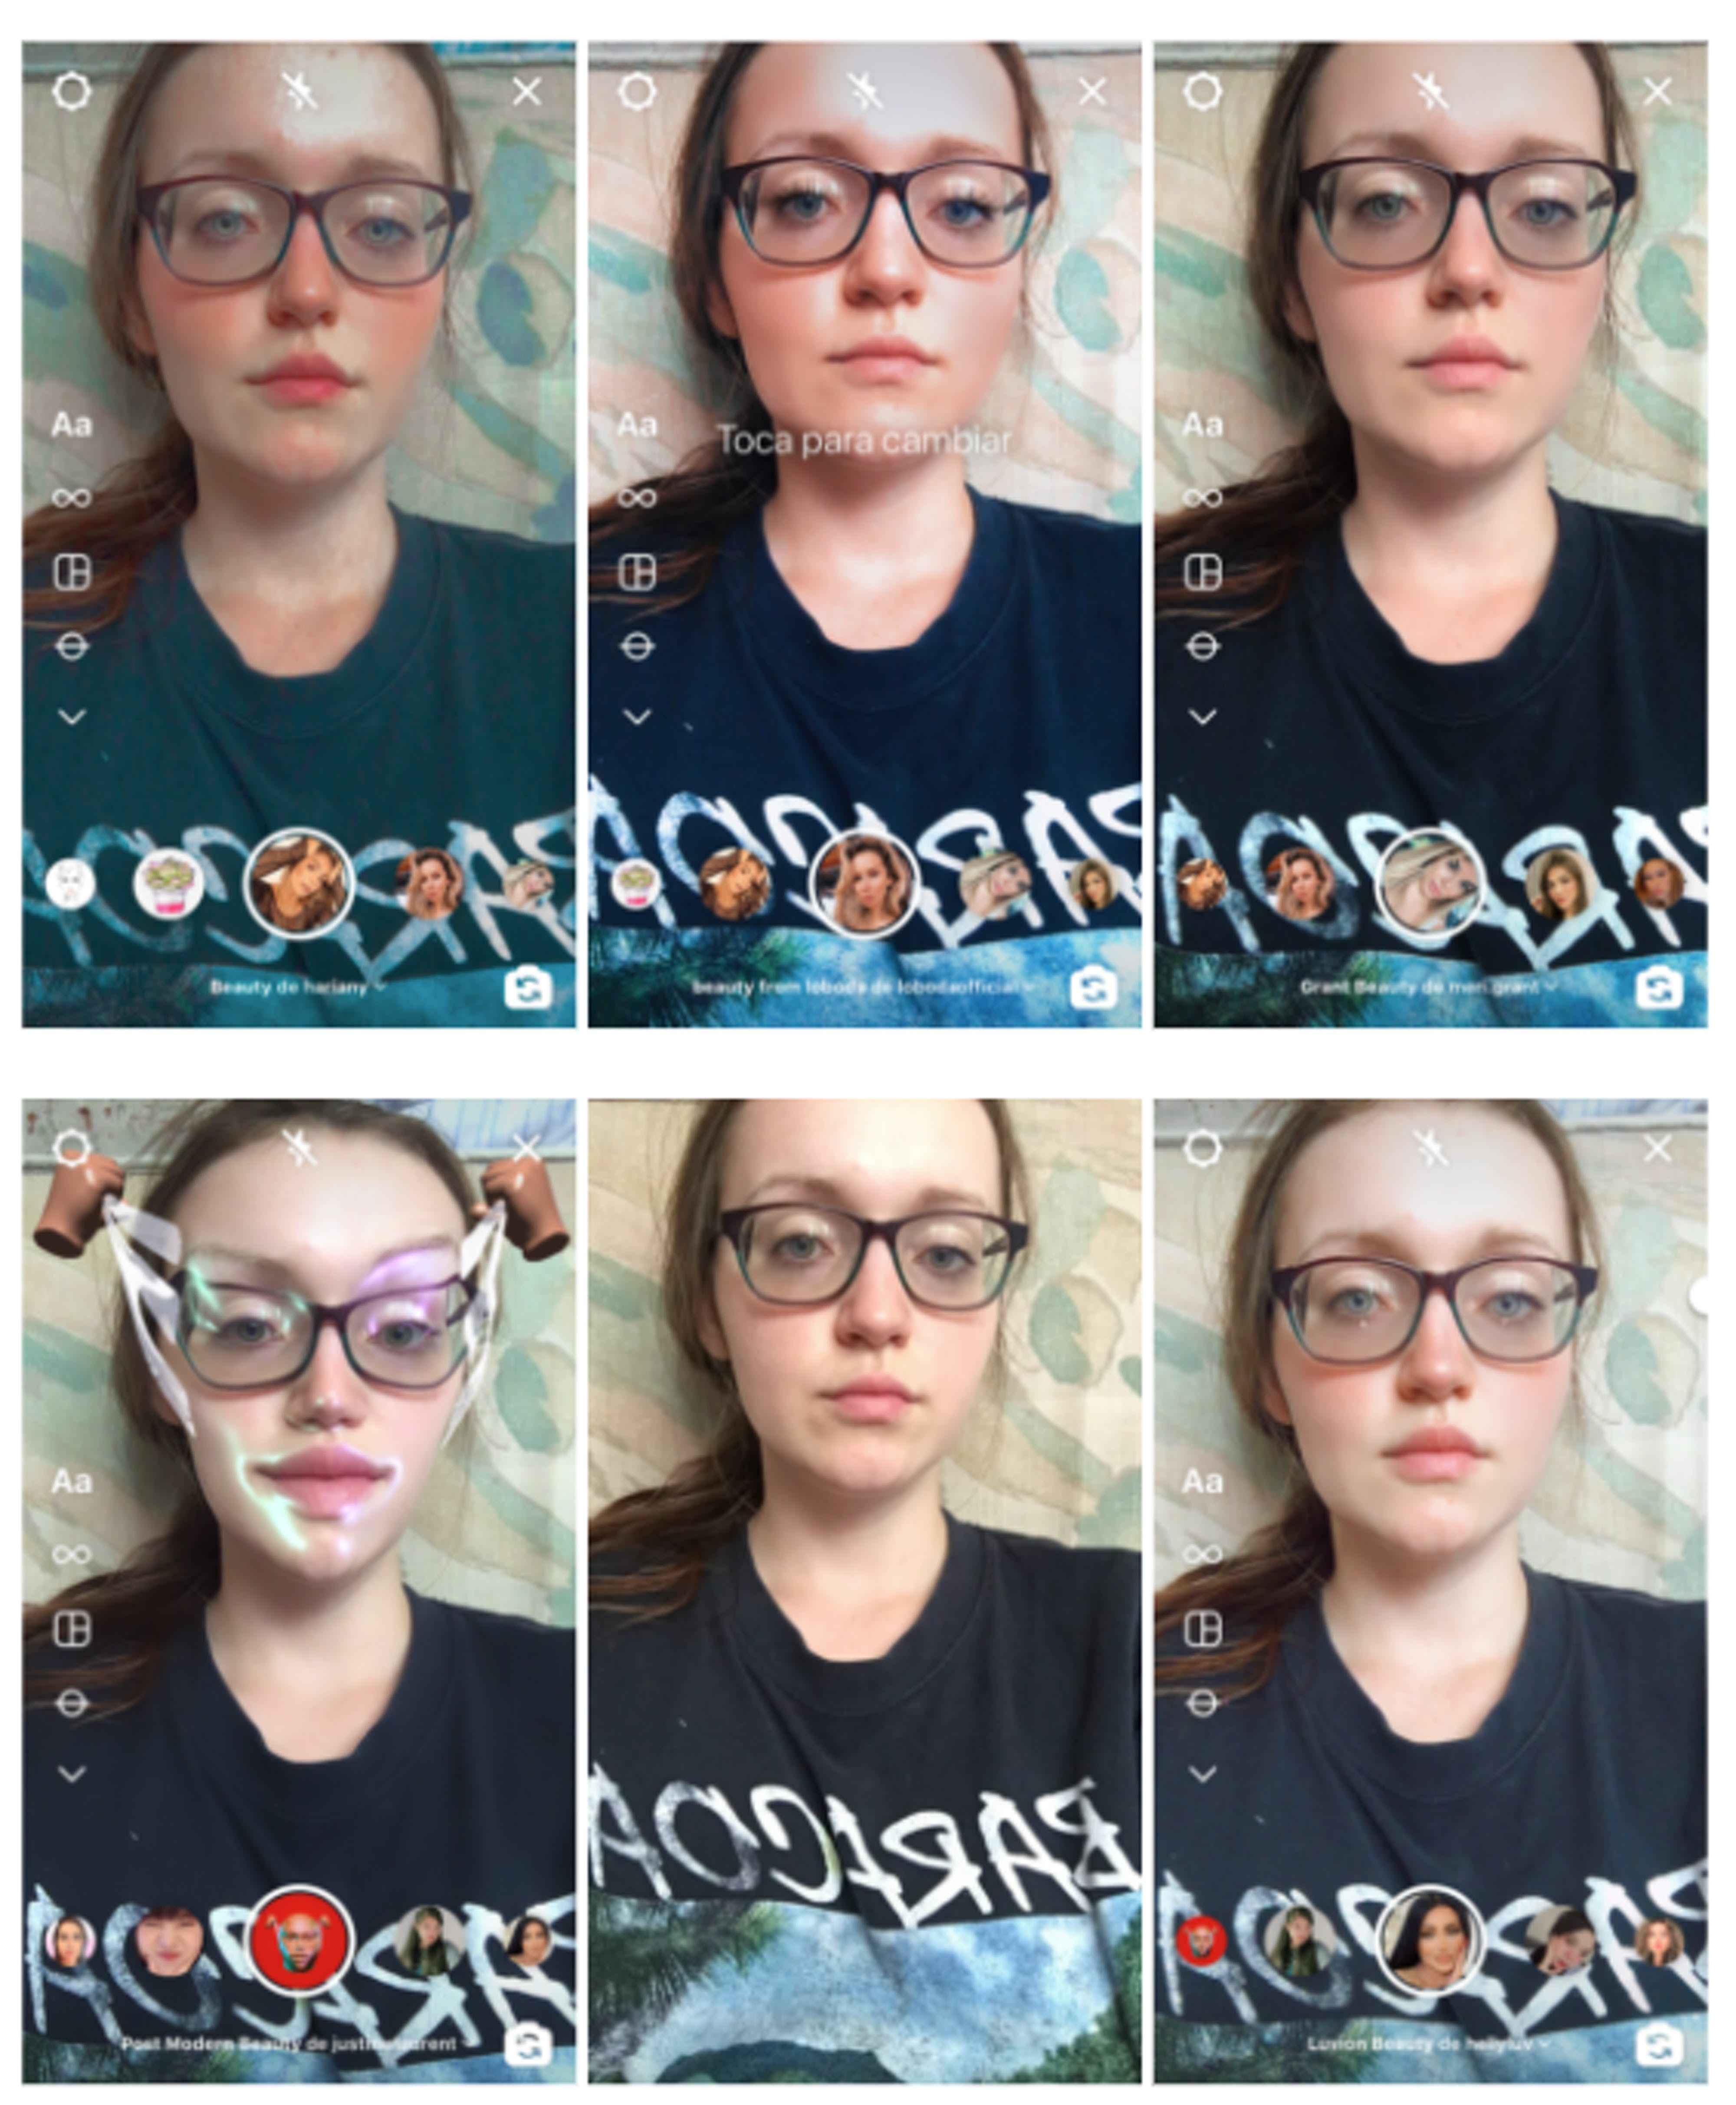 An example of six filters the author has tried on herself, including redder lips and cheeks, paler skin and even a filter that appears to plastify and lift her features.